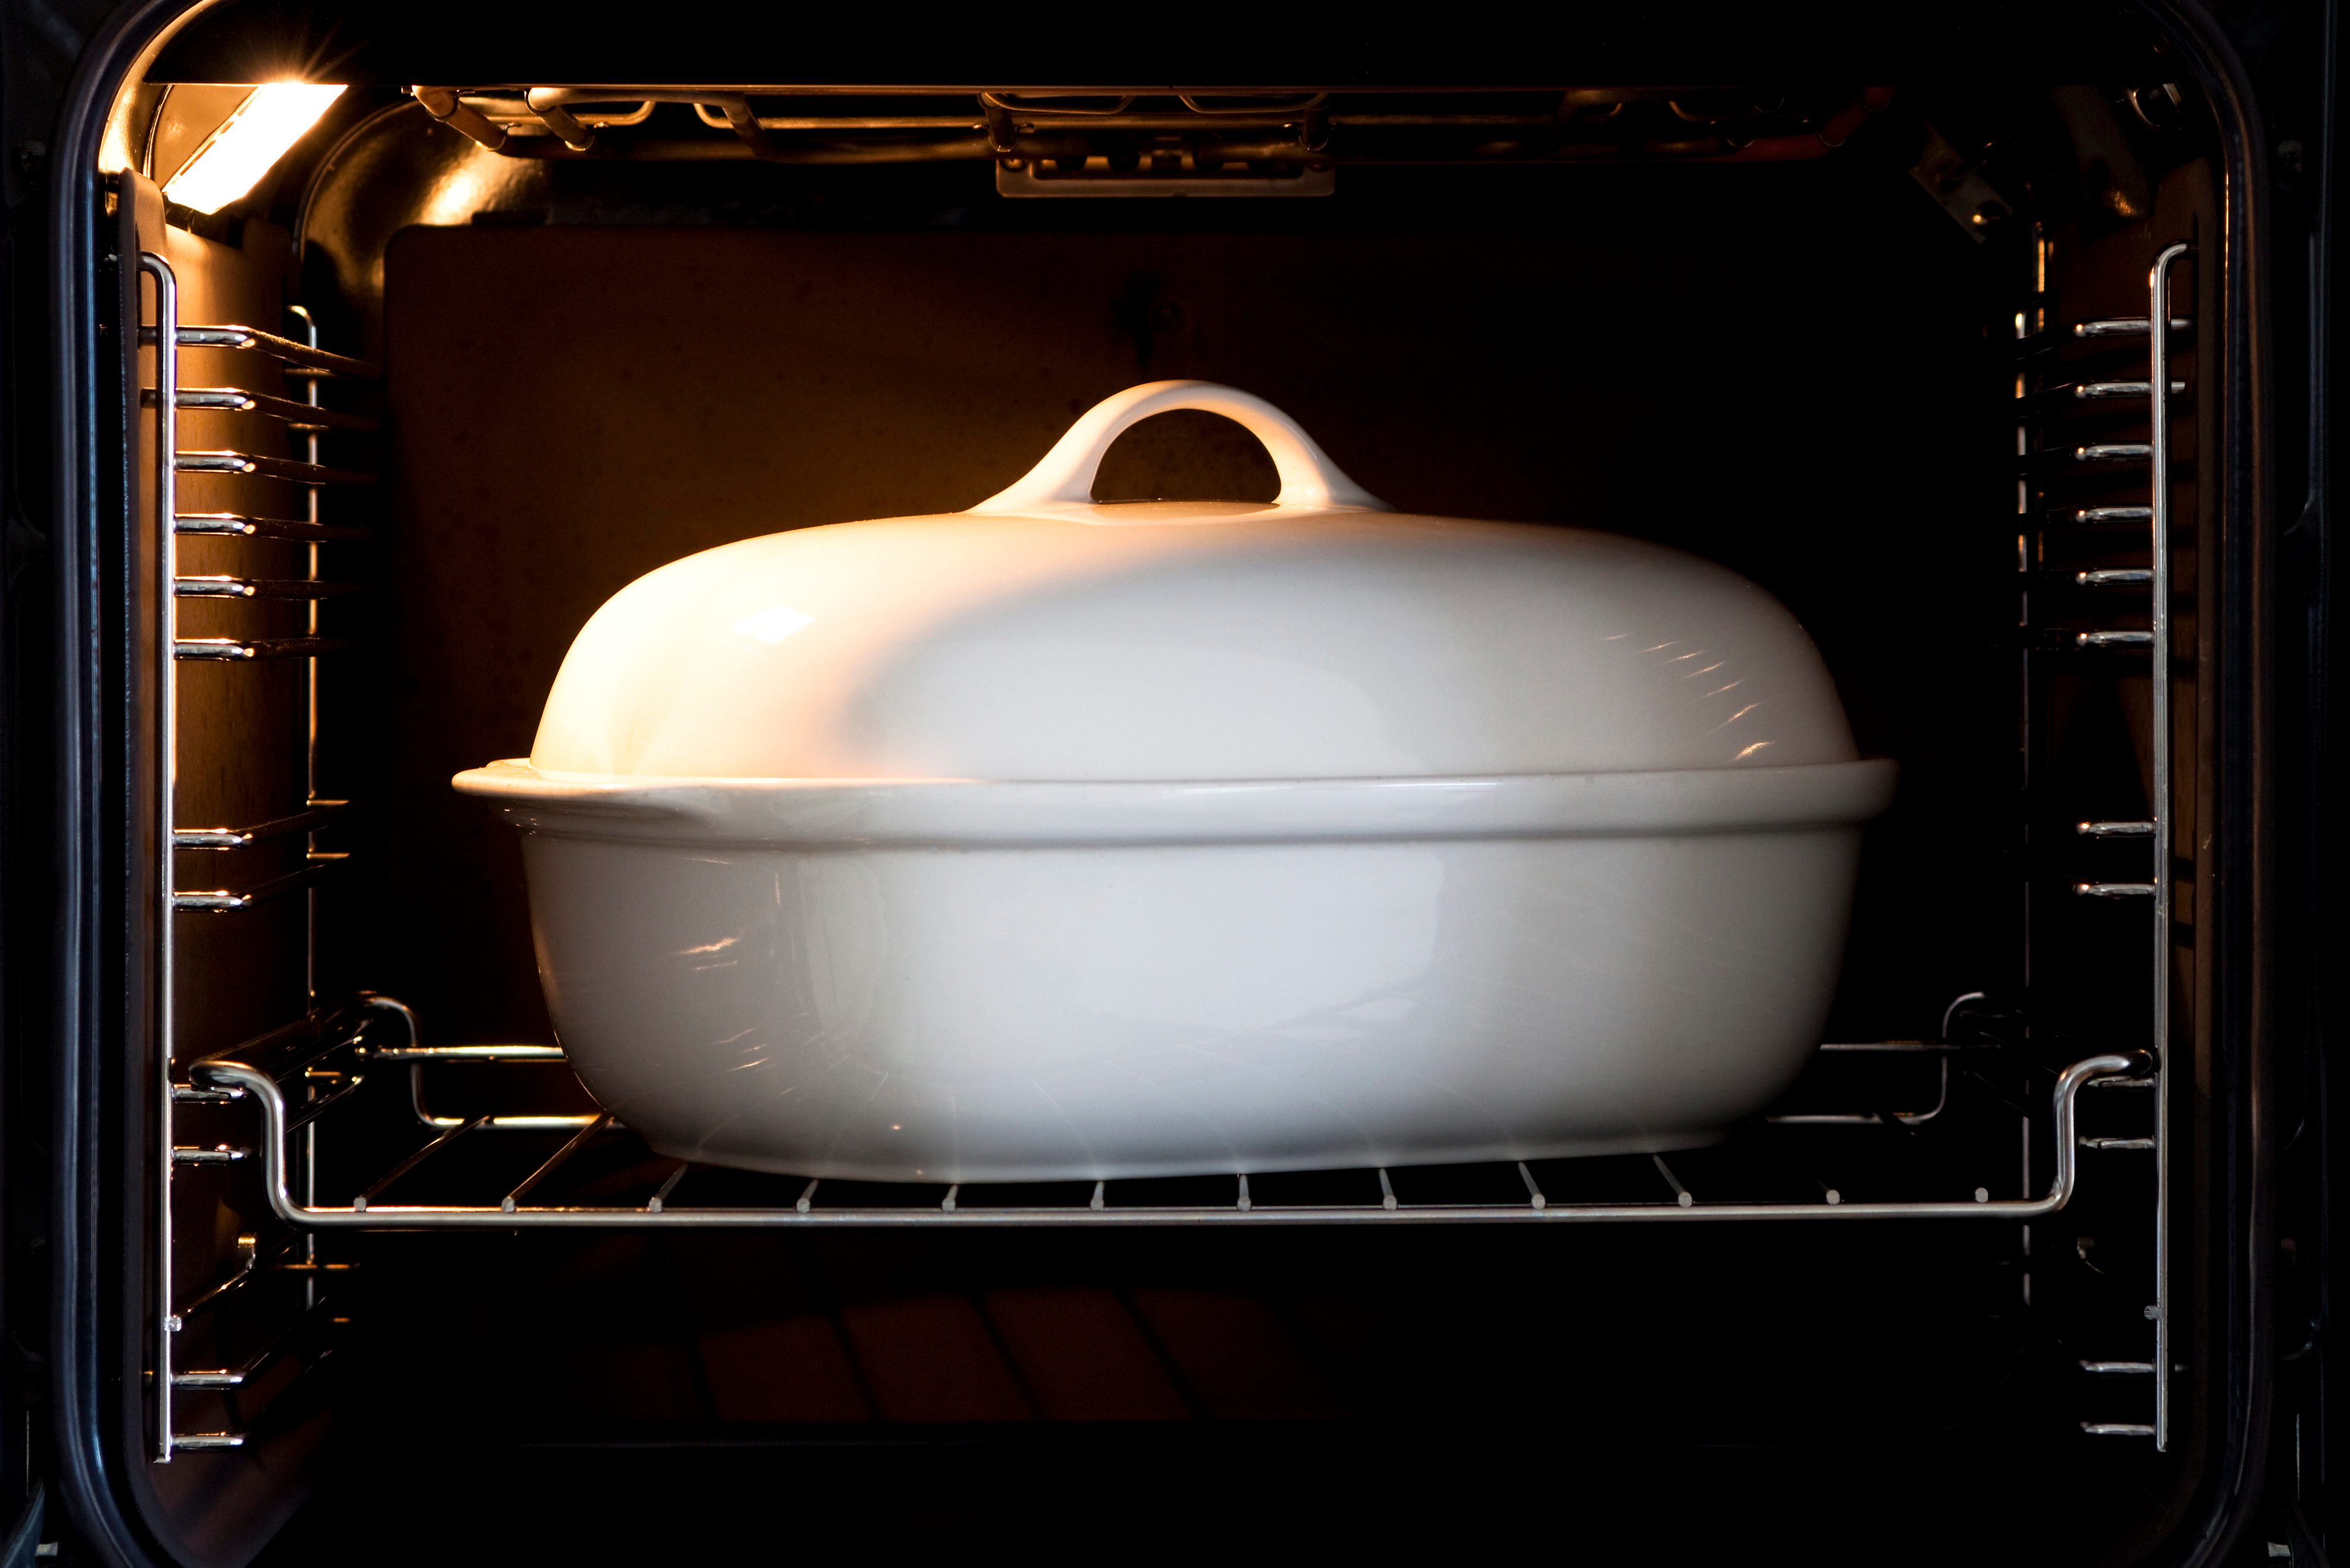 White porcelain baking dish with lid in open owen